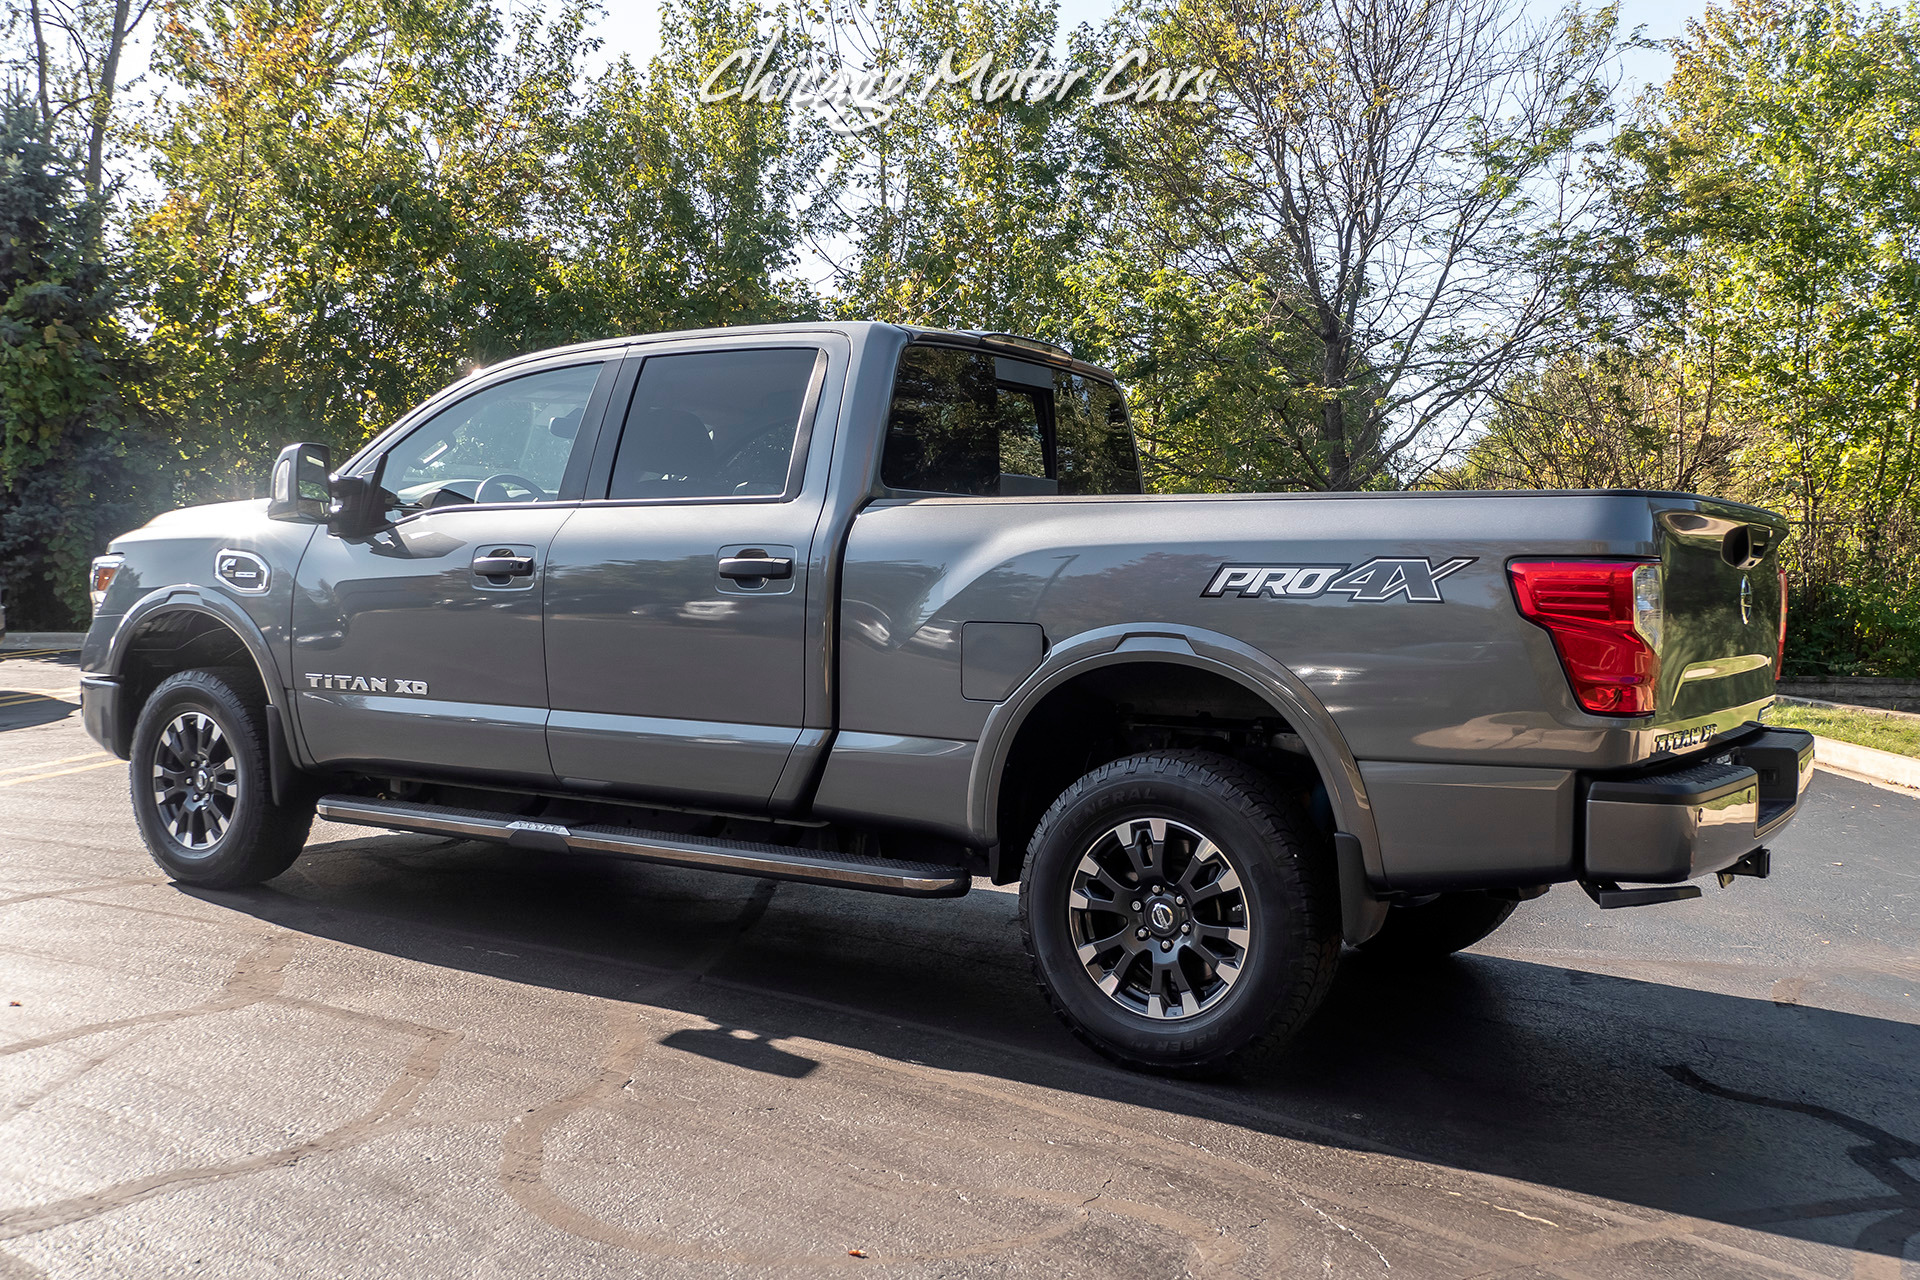 Used-2017-Nissan-Titan-XD-PRO-4X-4WD-Cummins-Turbo-Diesel-Pickup-LUXURY-PACK